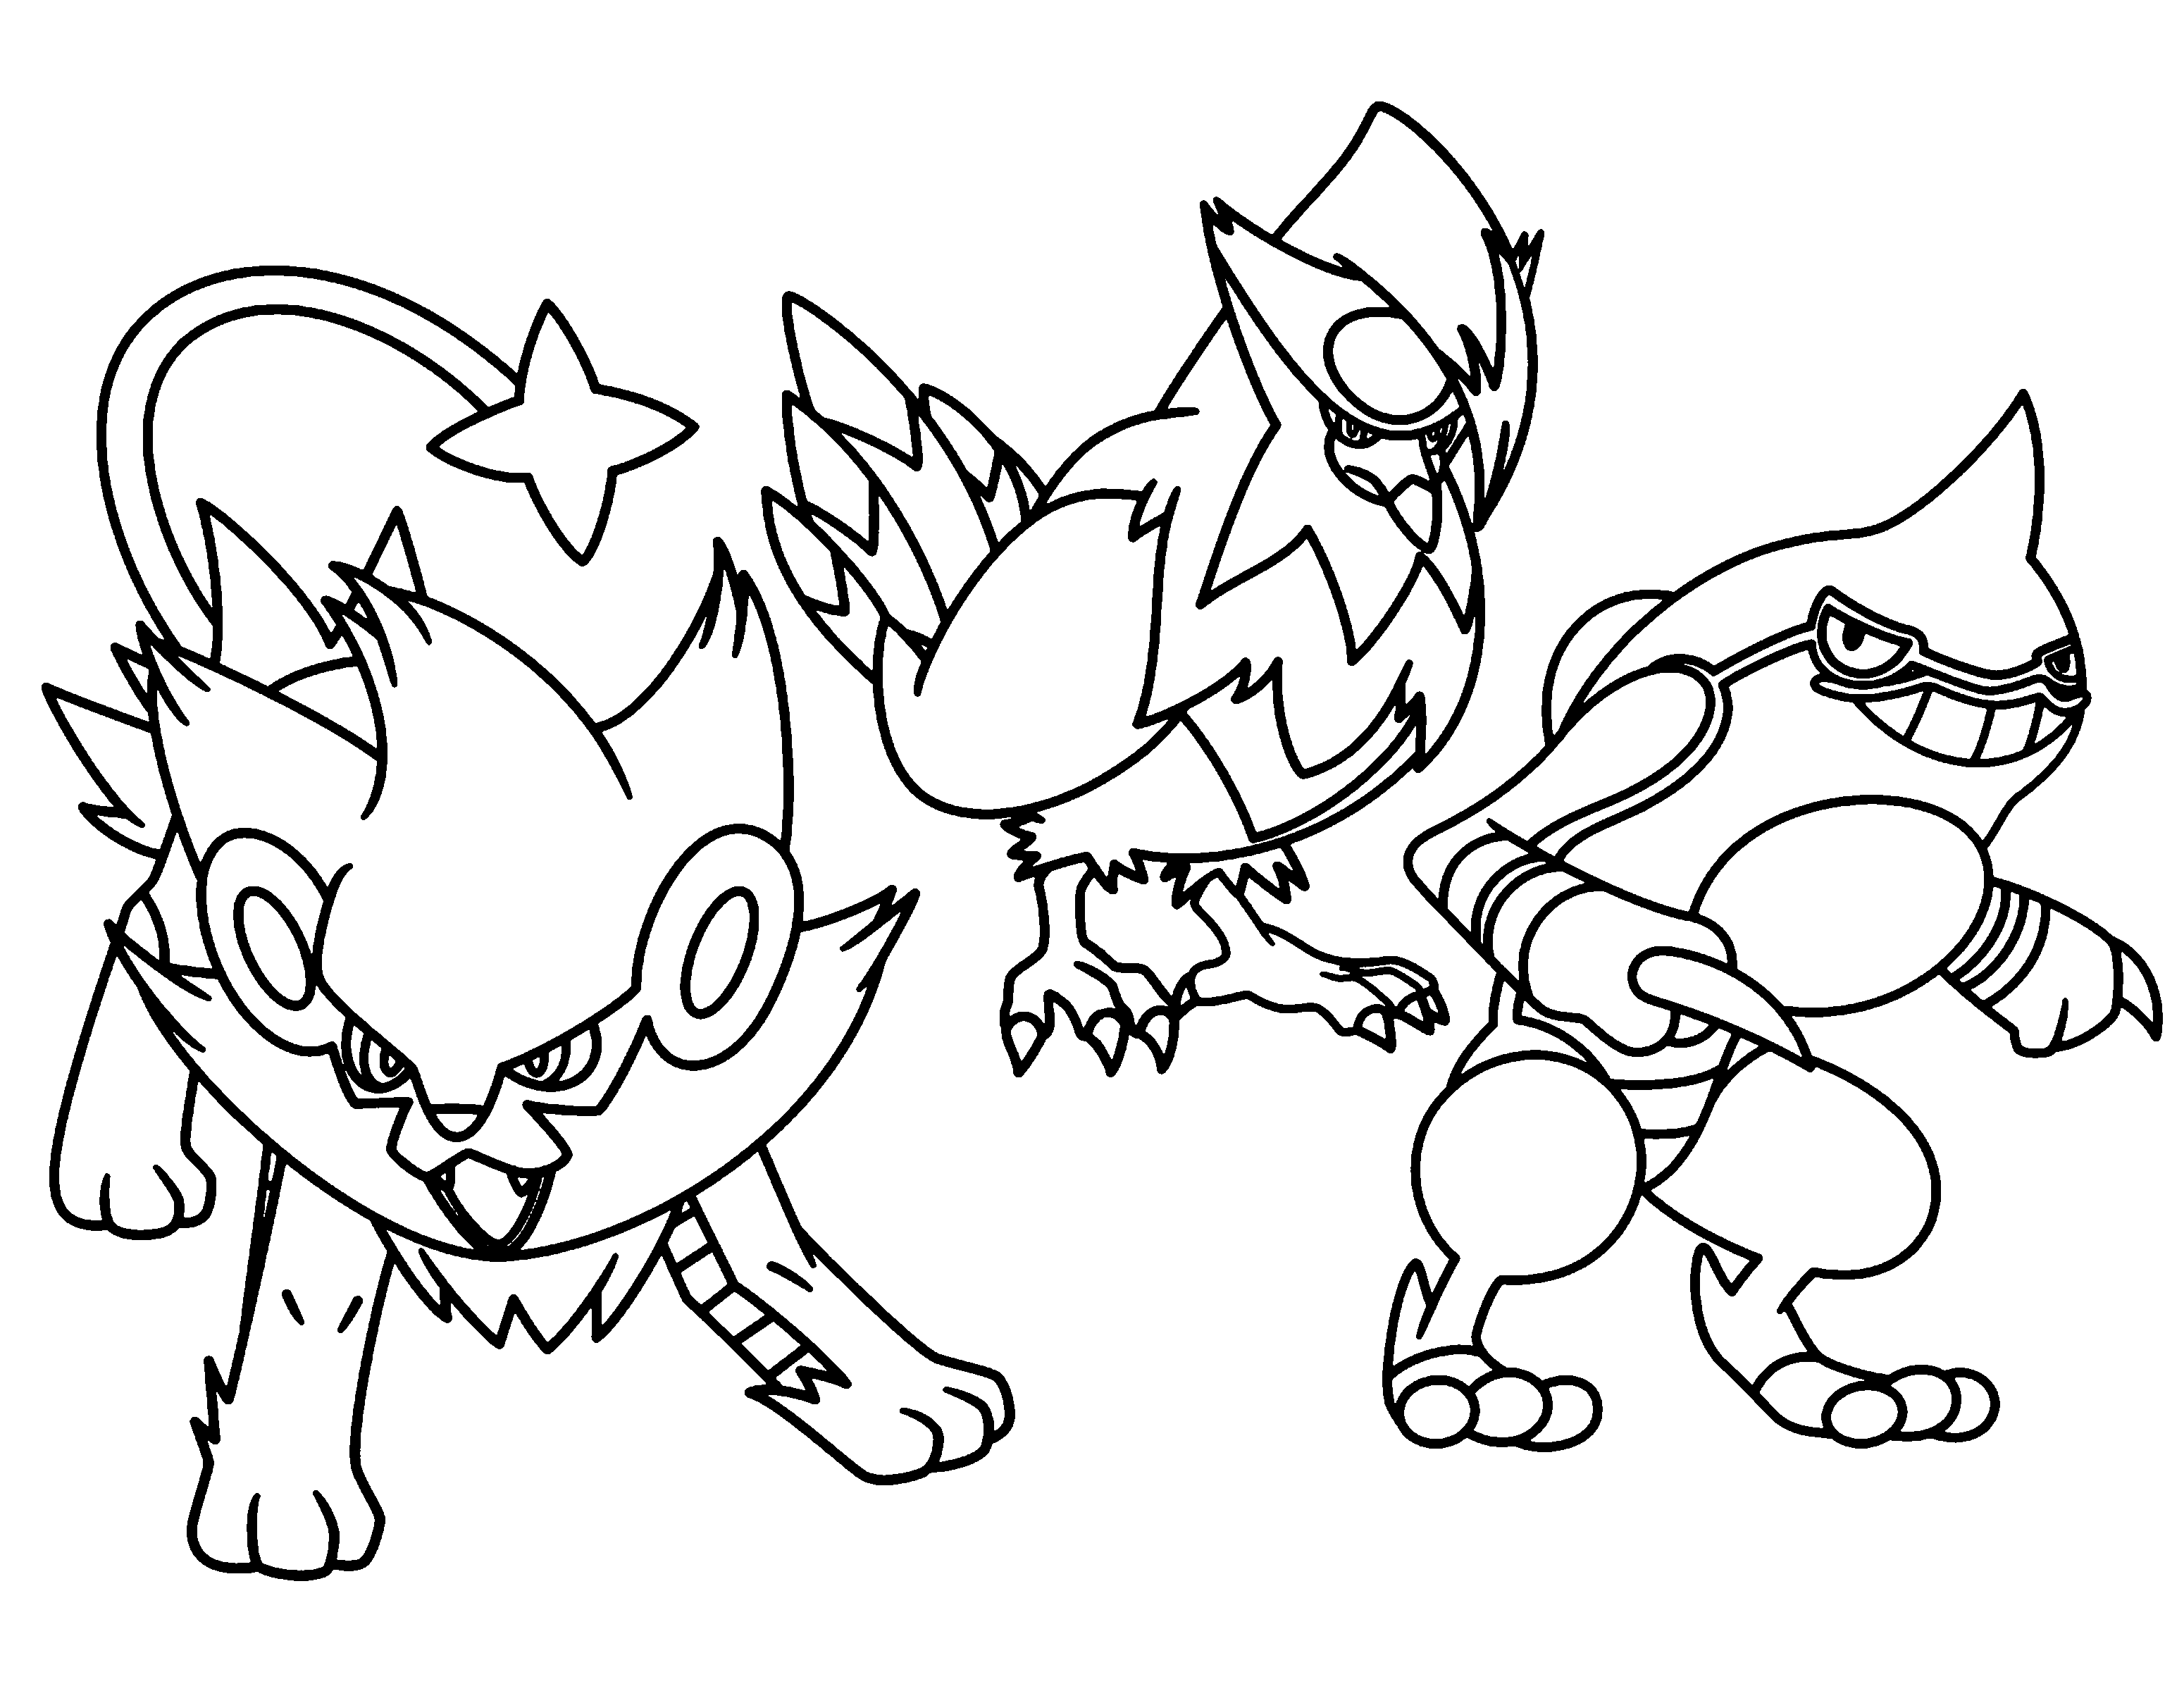 coloring pictures of pokemon legendary pokemon coloring pages bestappsforkidscom of pictures coloring pokemon